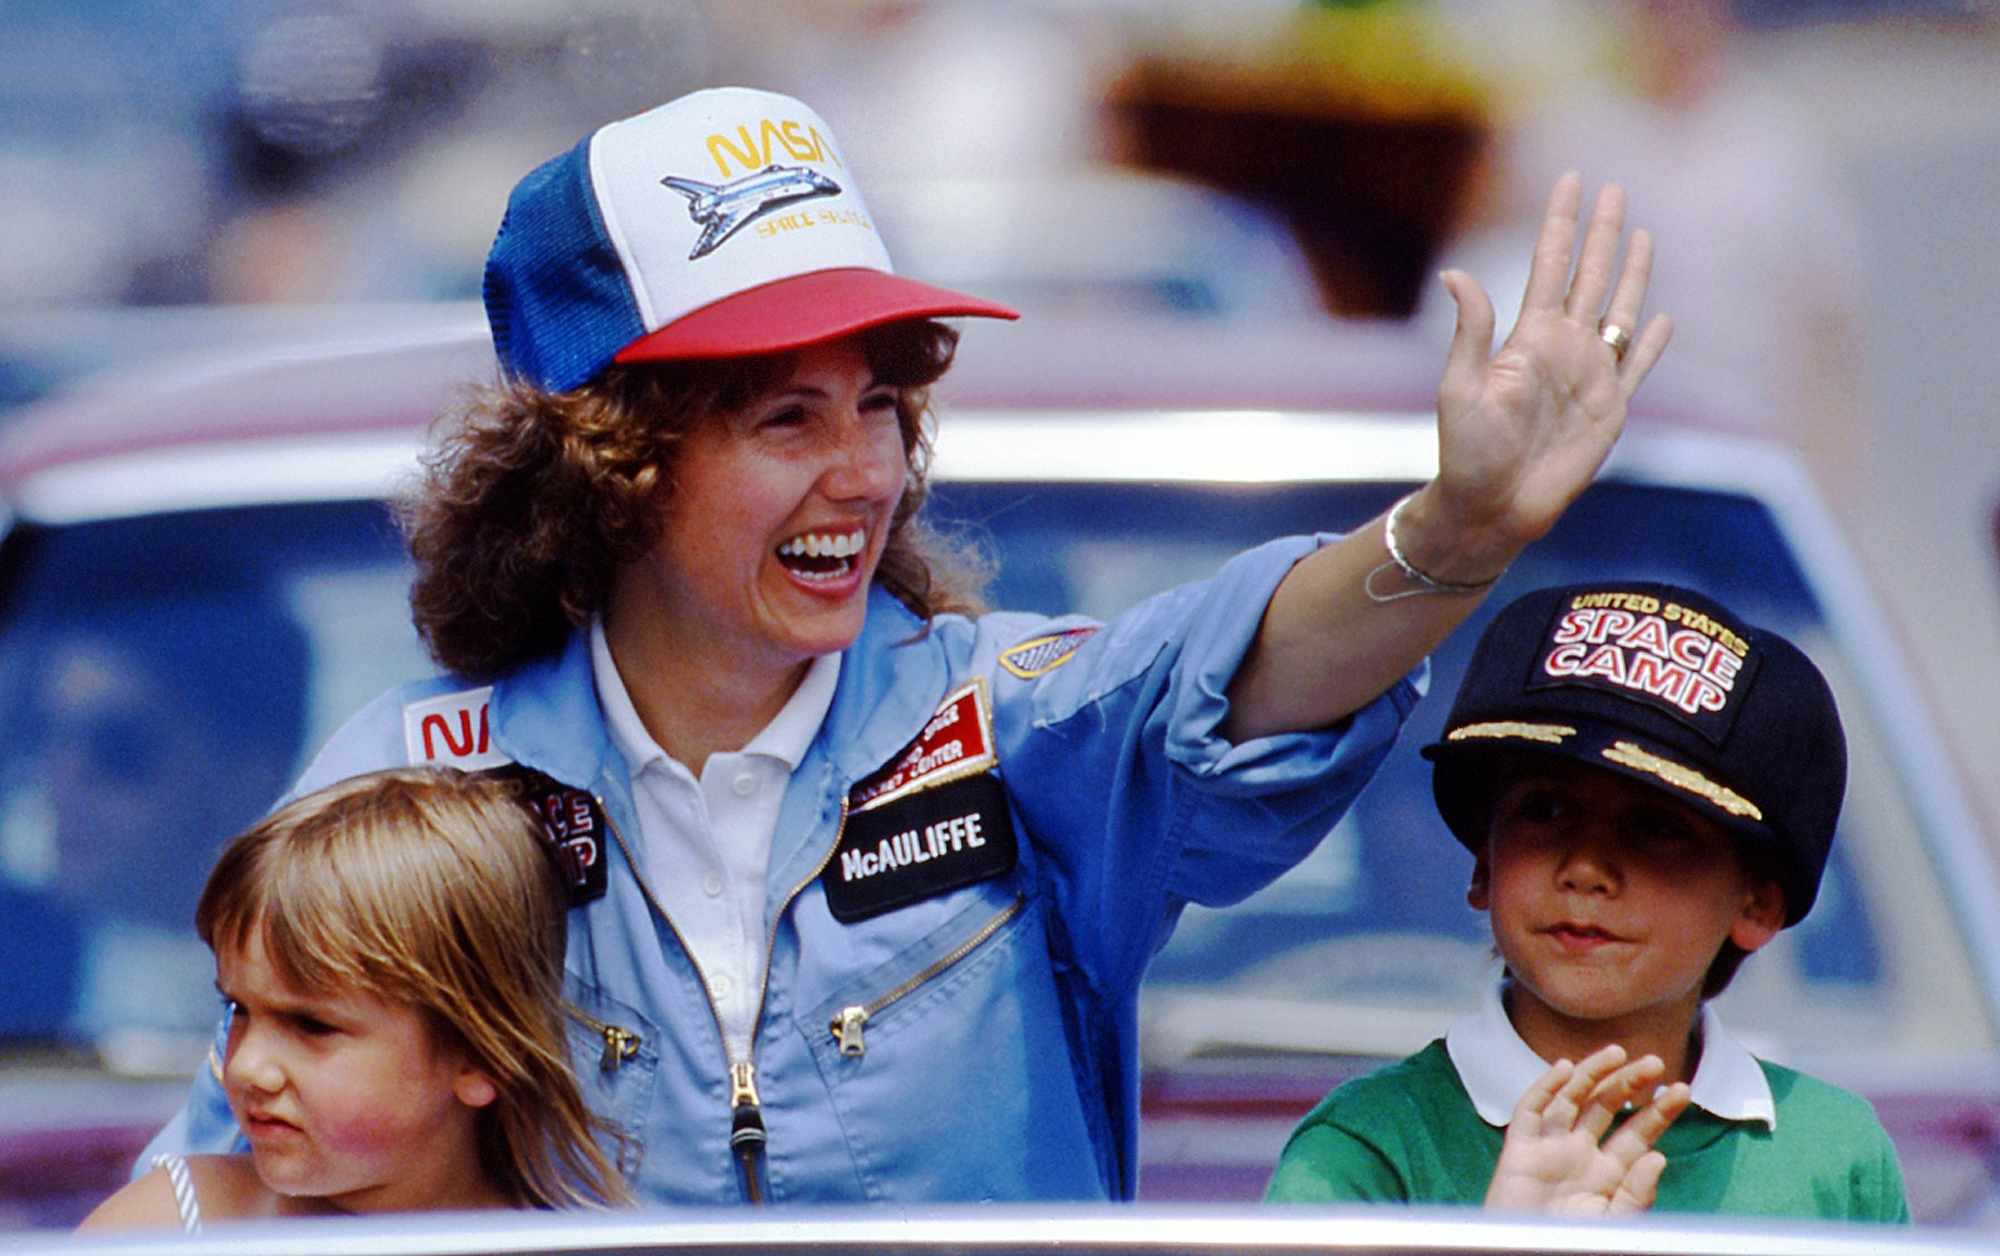 People_Christa_McAuliffe_28041-159532.jpg15285384